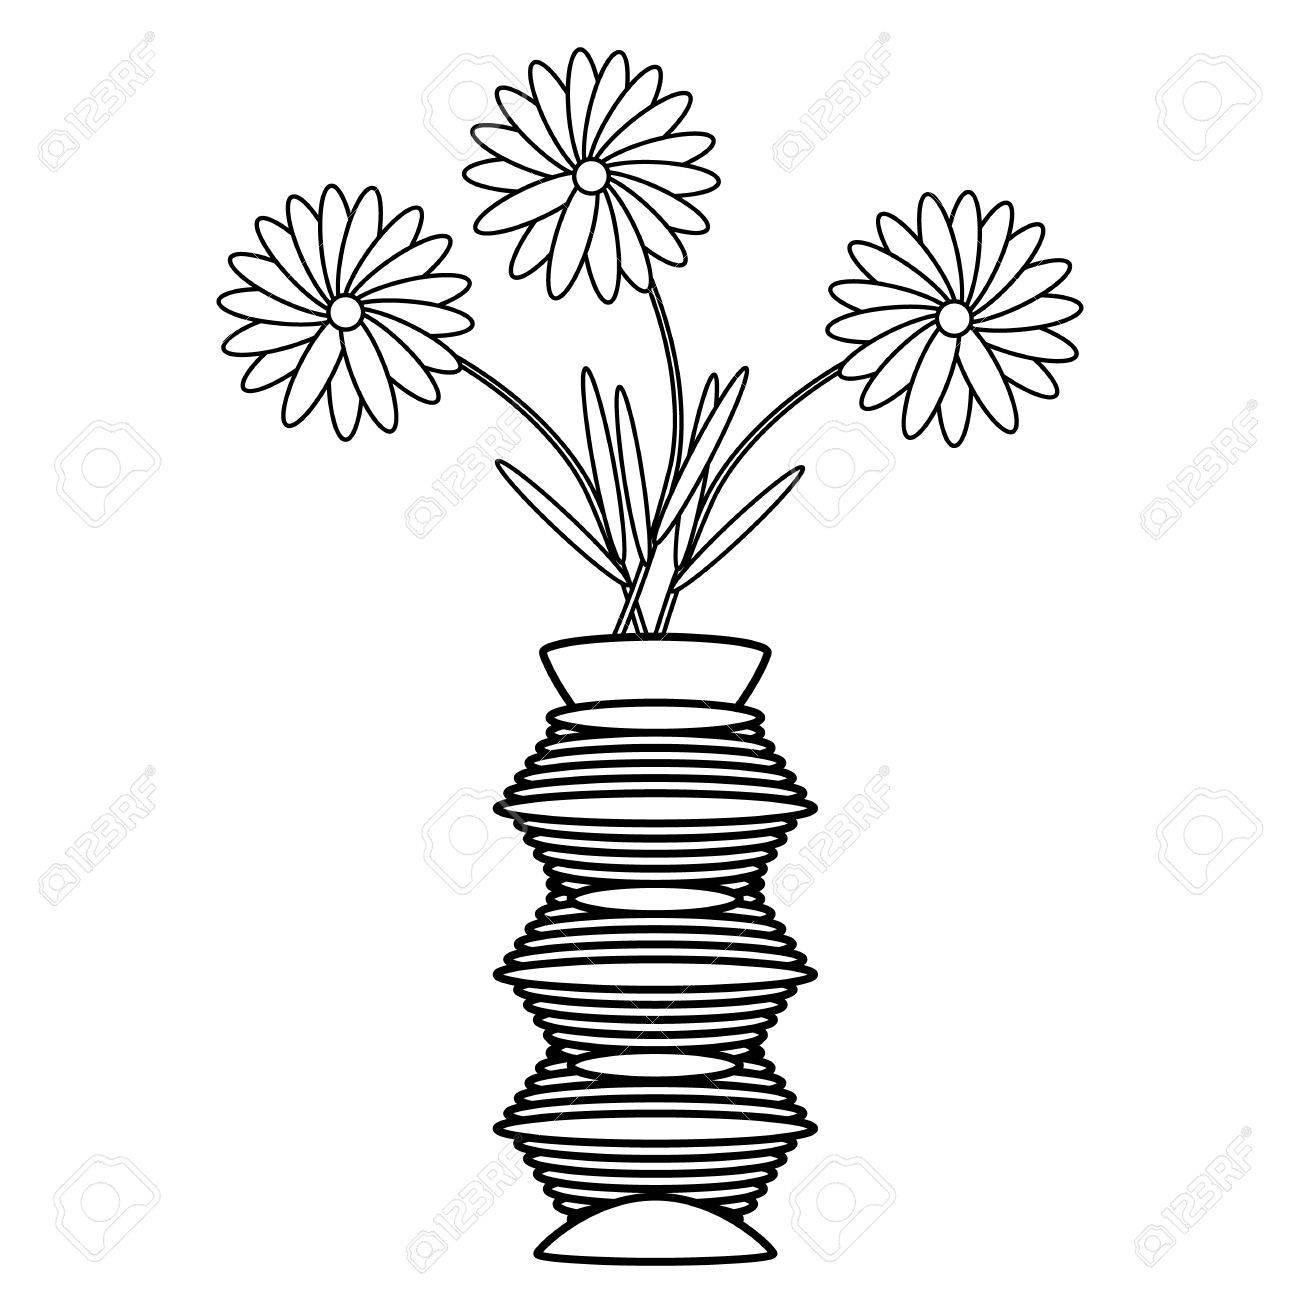 1300x1300 Vase Clipart Black And White. Vase Clipart Black And White Free